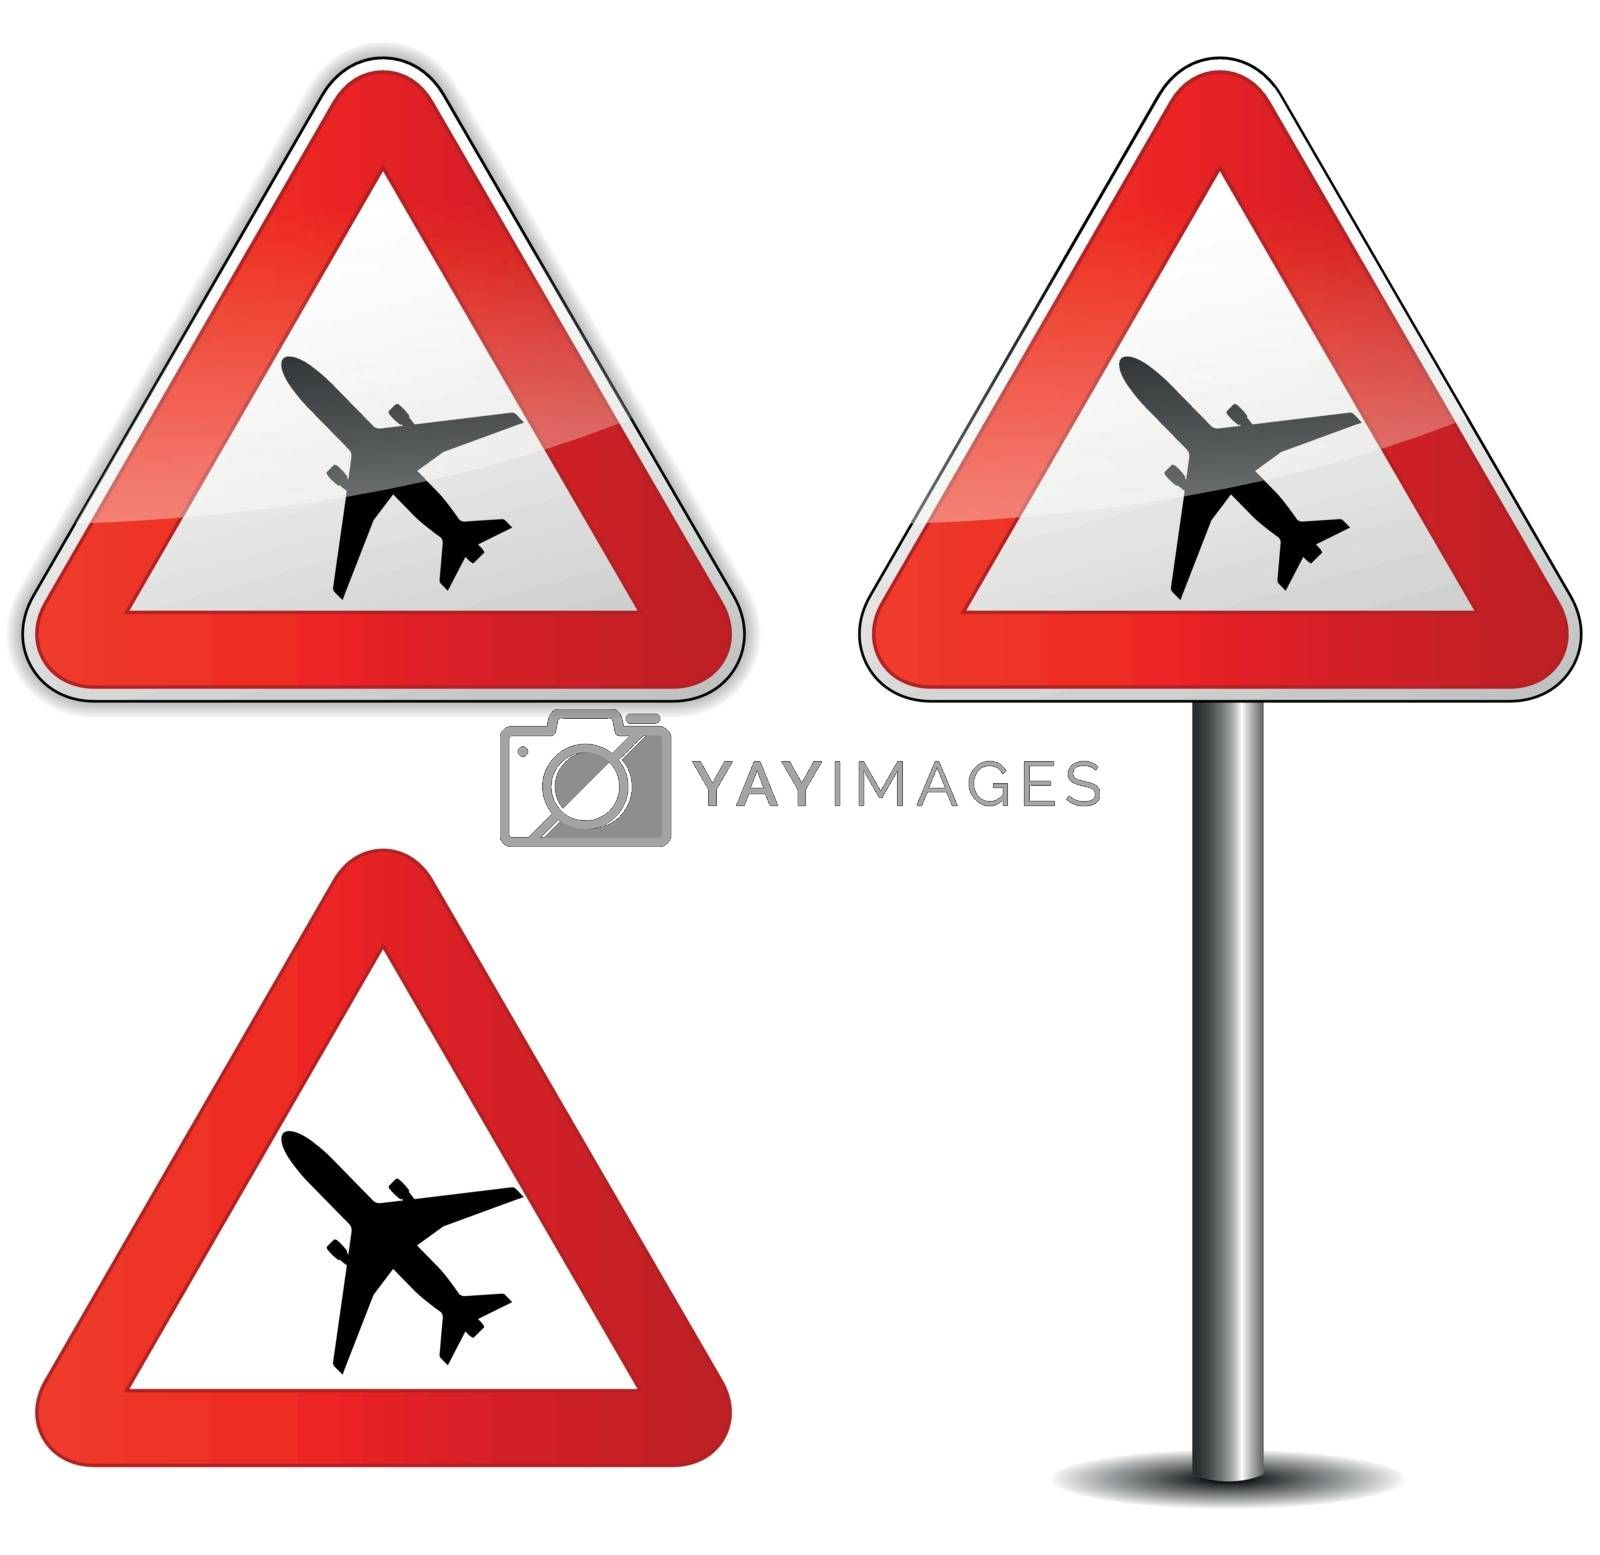 Vector illustration of airplane signpost on white background